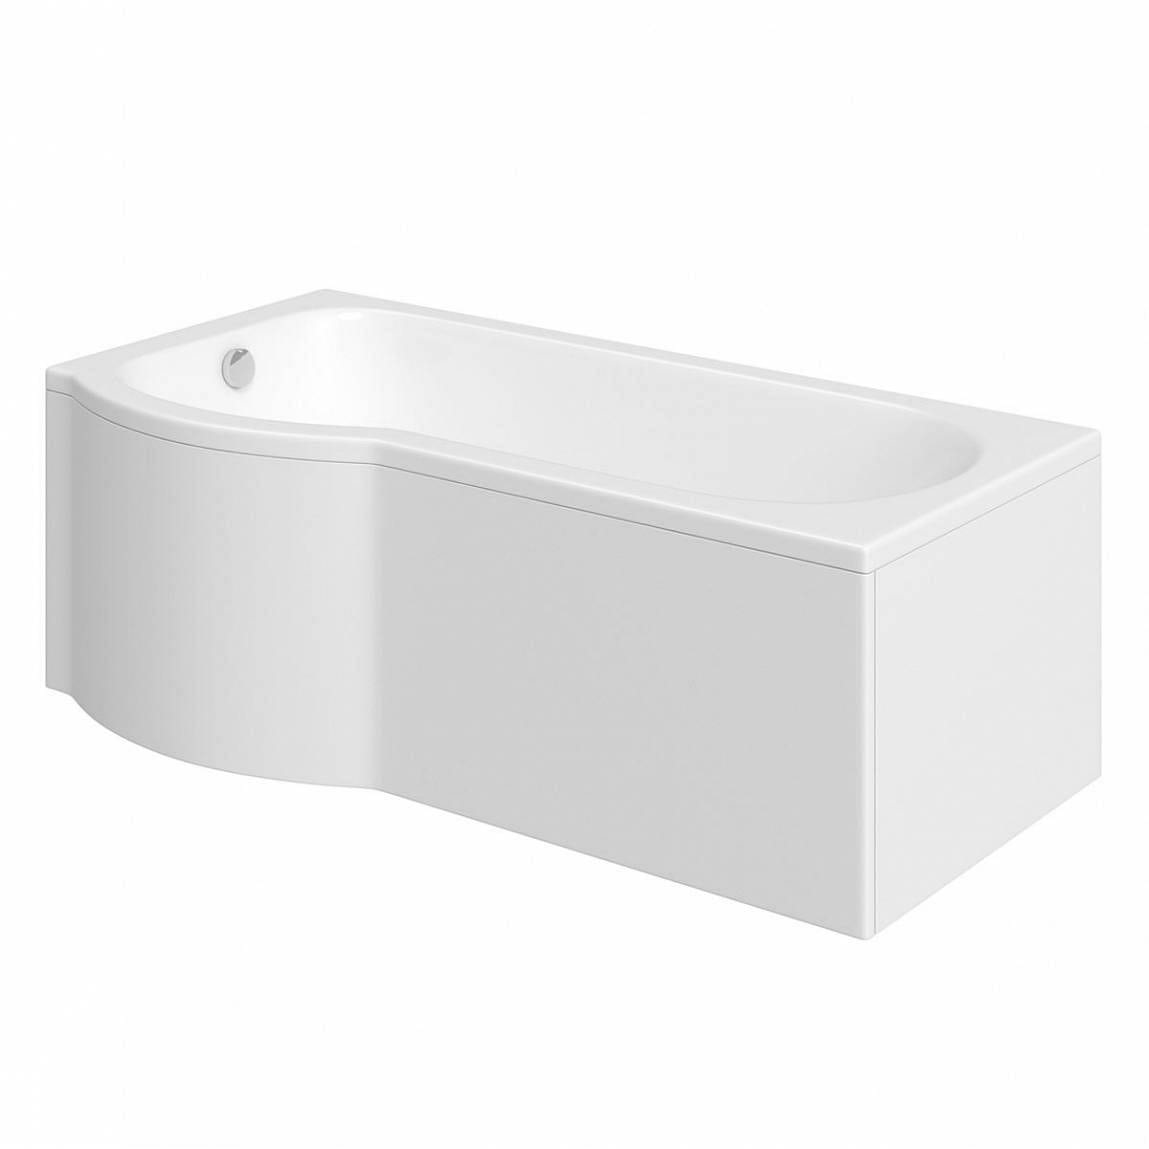 Orchard P shaped left handed shower bath